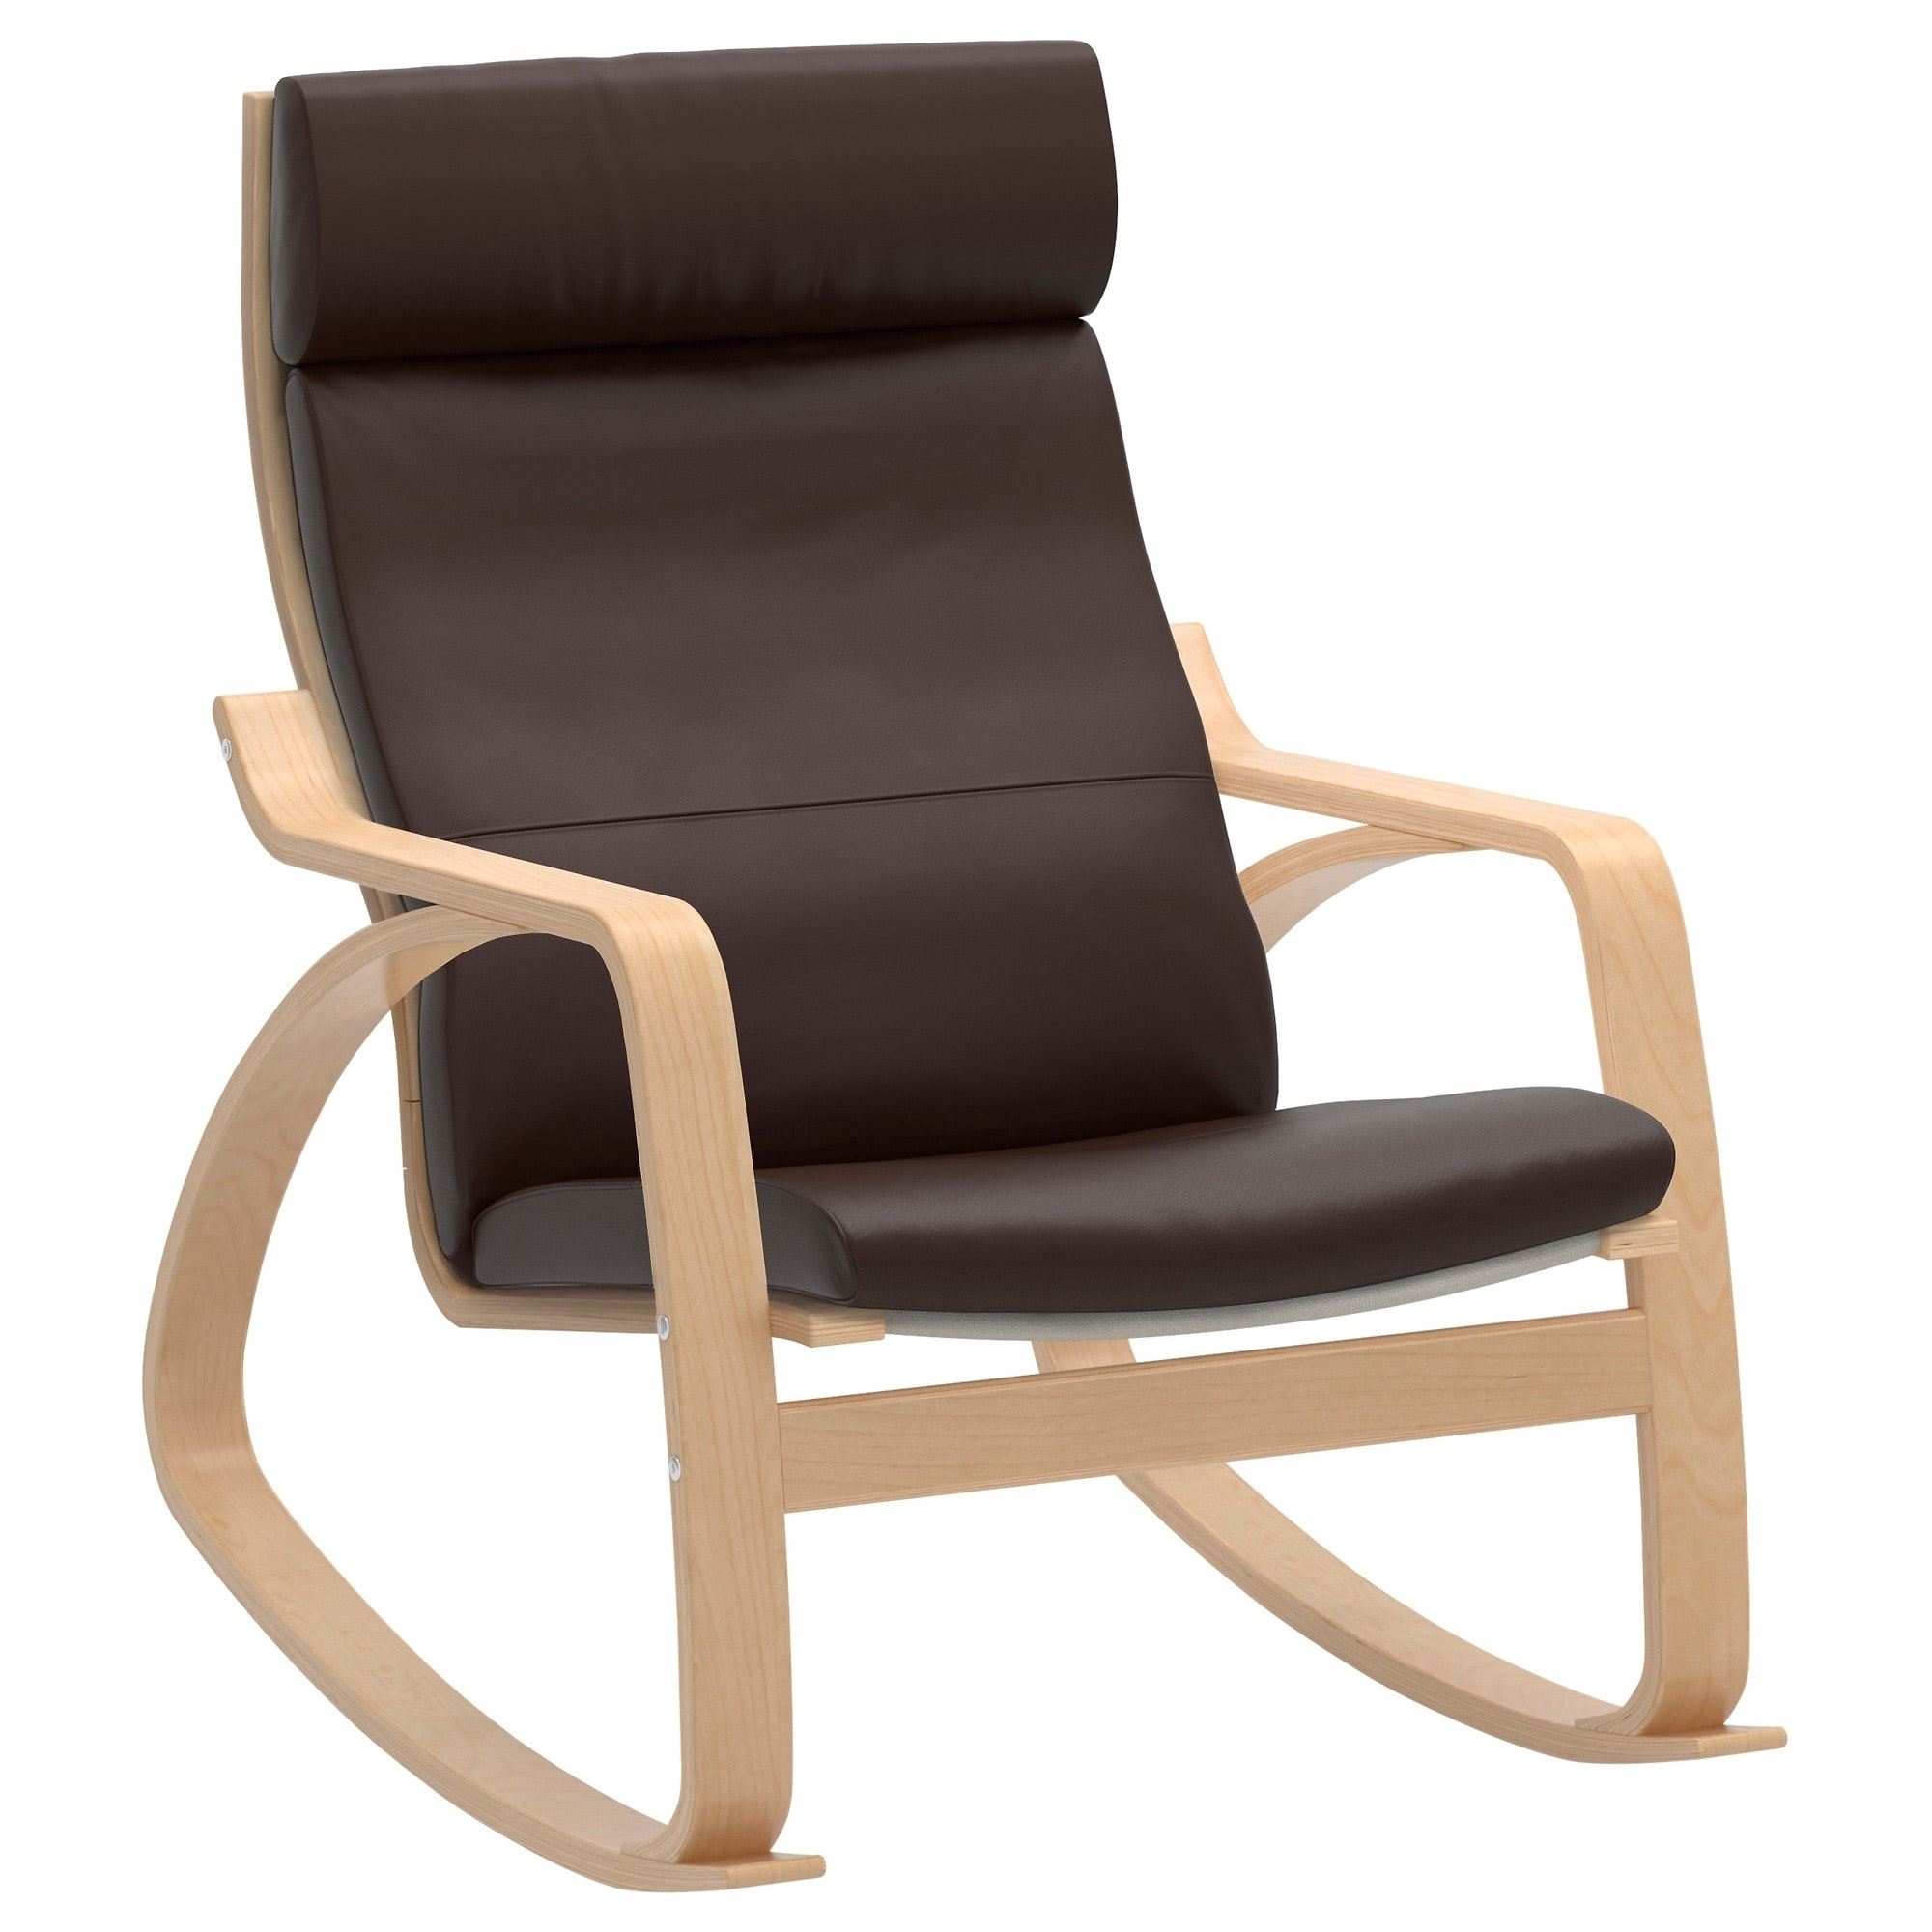 Widely Used Poäng – Ikea Intended For Rocking Chairs With Footstool (View 10 of 15)